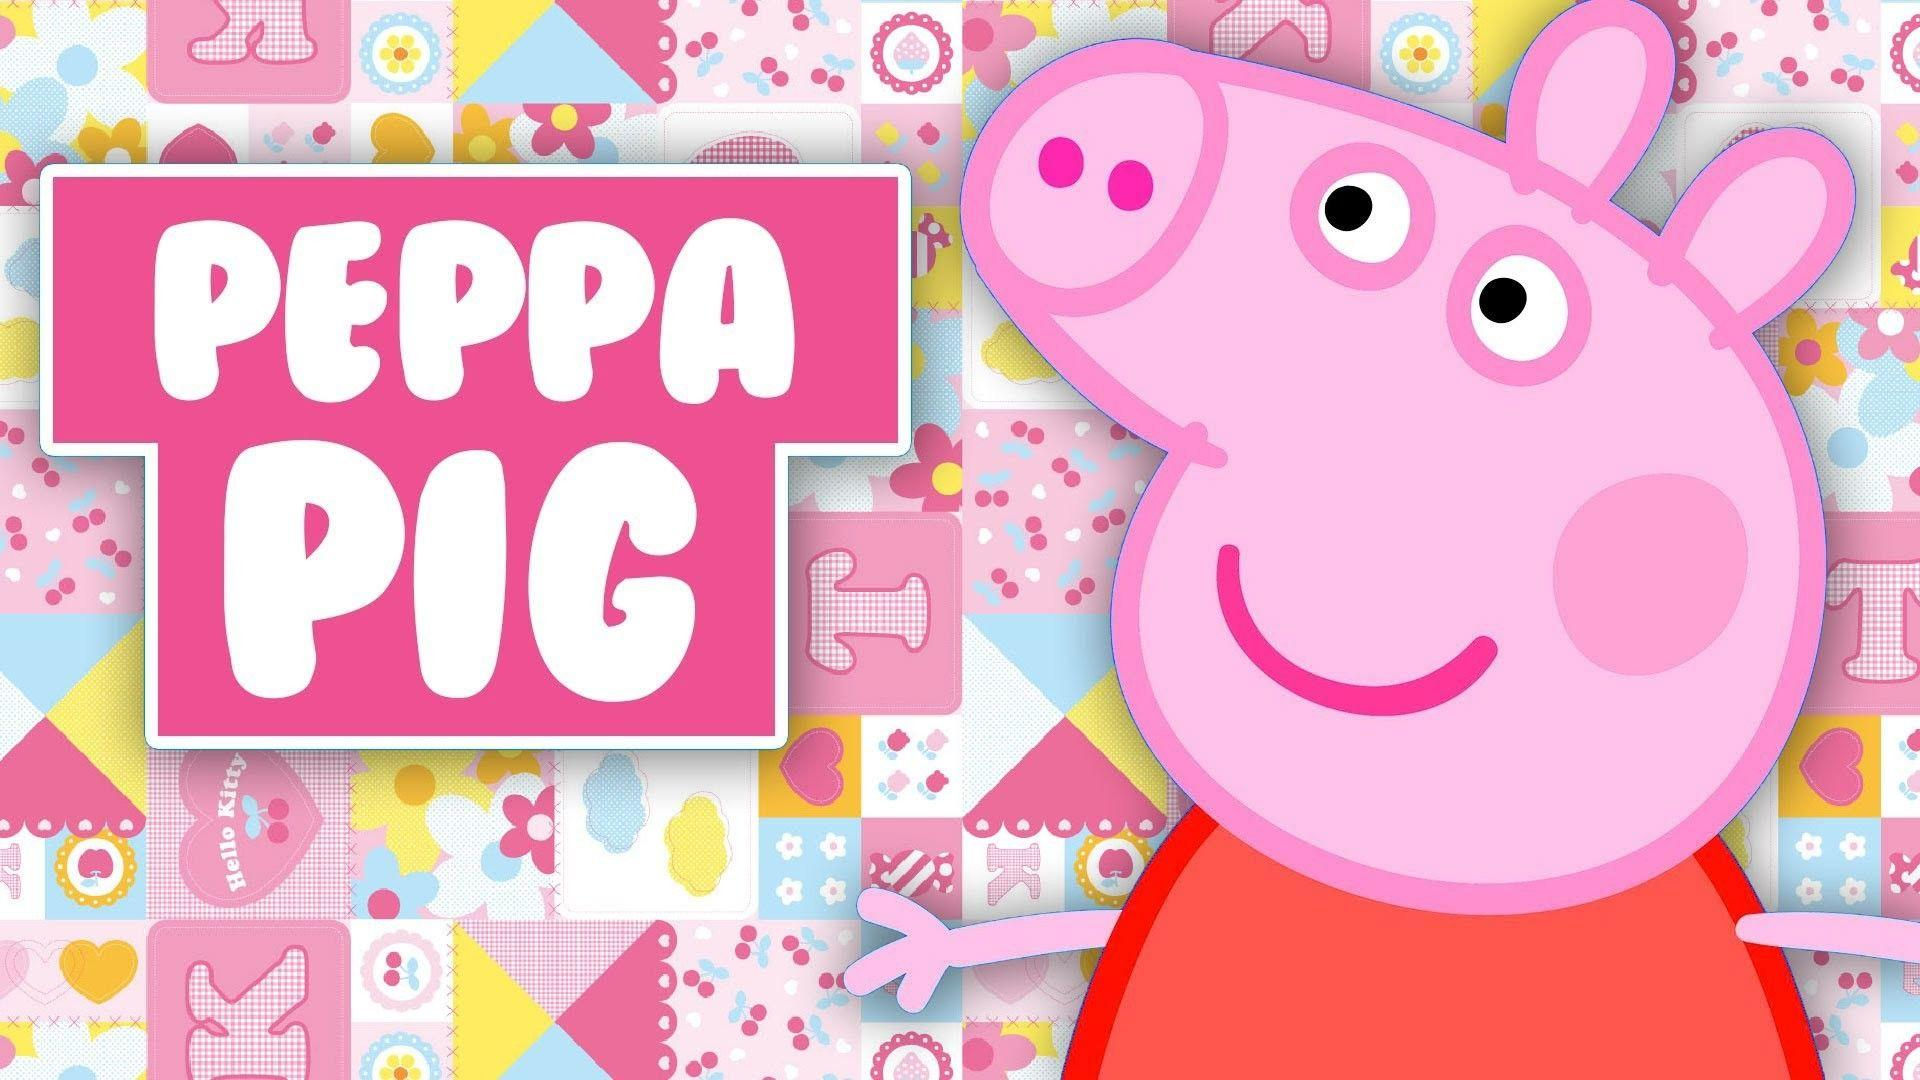 Peppa Pig HD Wallpaper 19